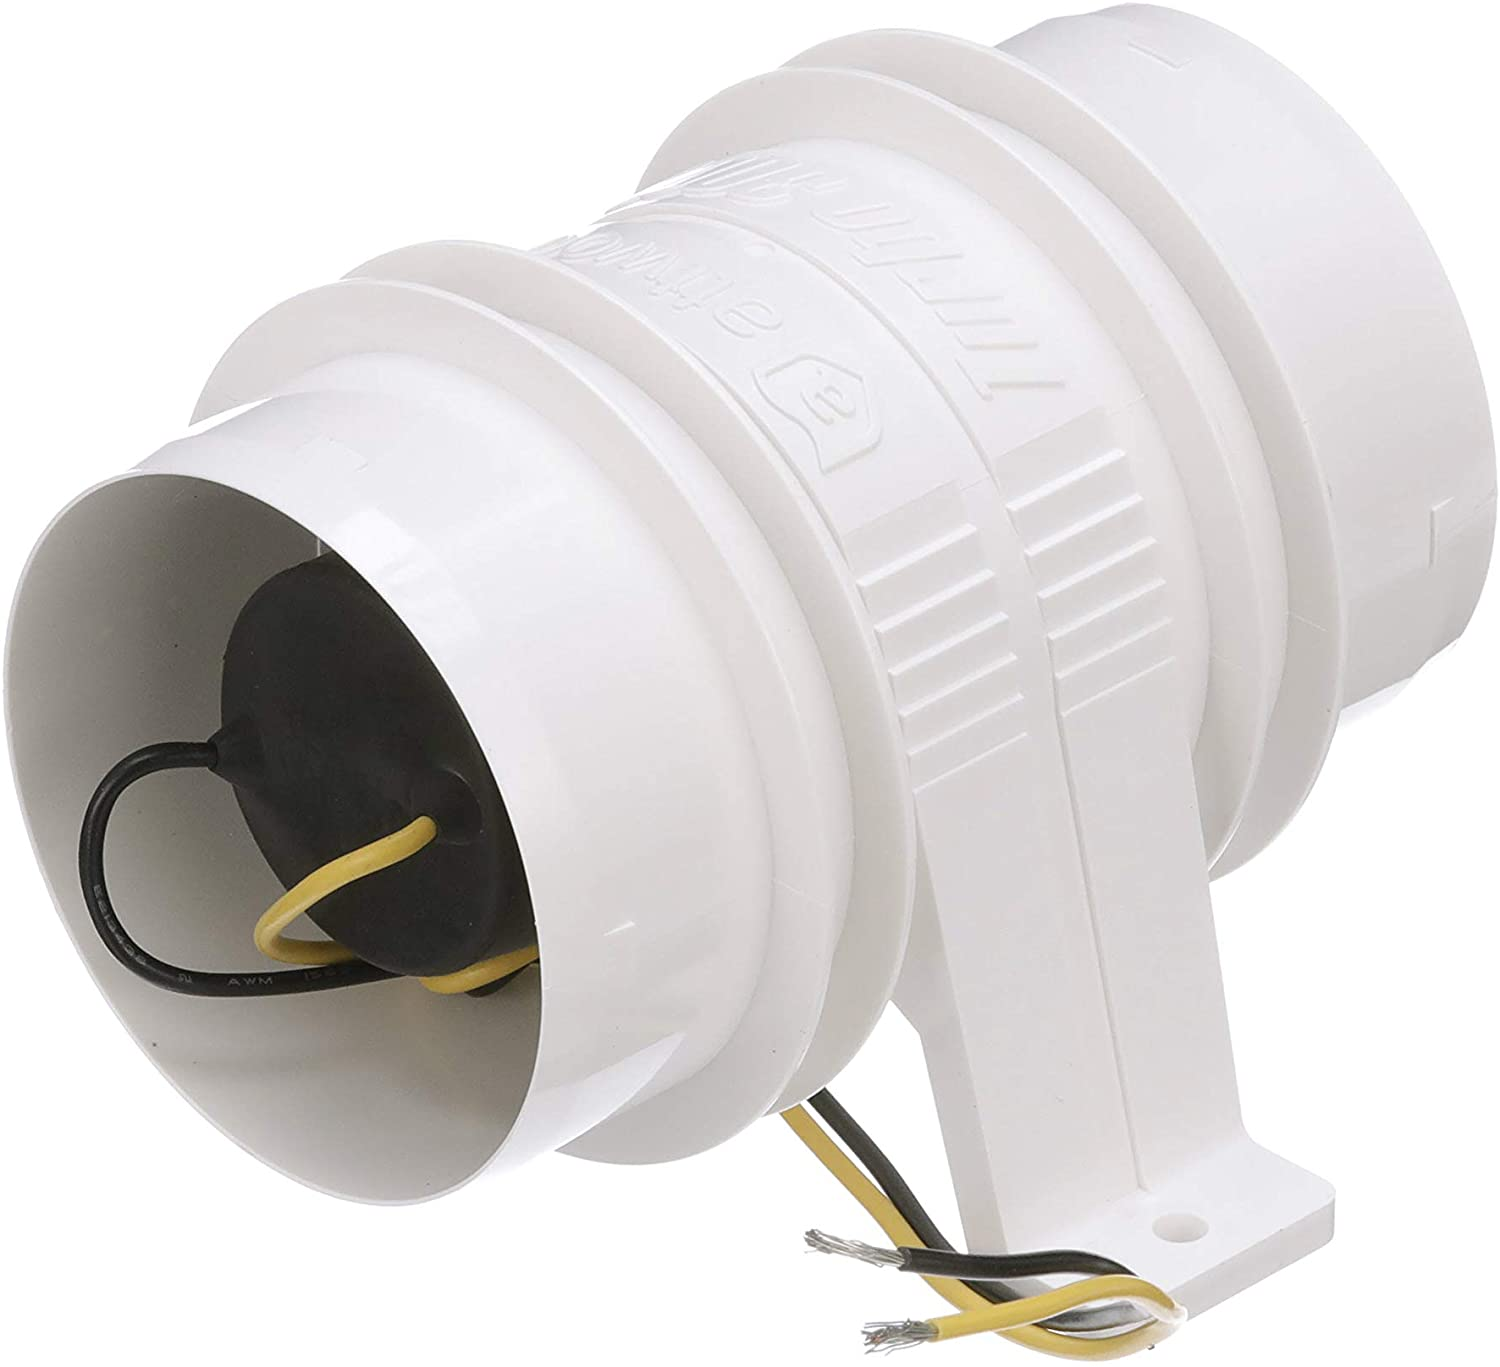 Attwood Blower (White, 3-Inch)